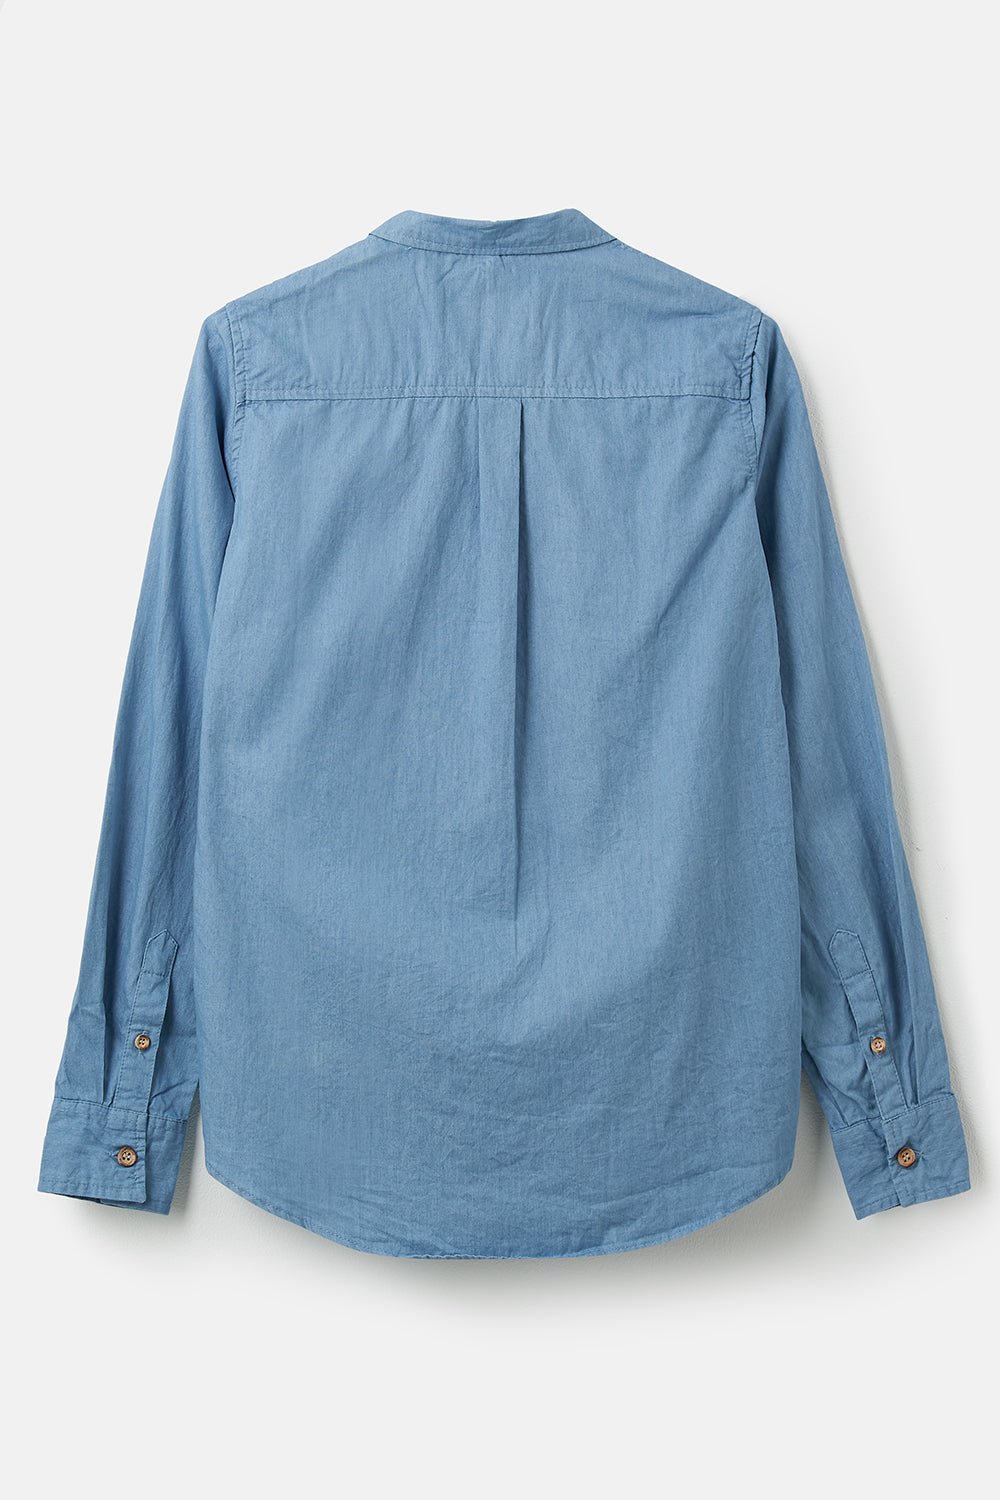 Lighthouse Ocean - Womens Button Up Shirt - Denim